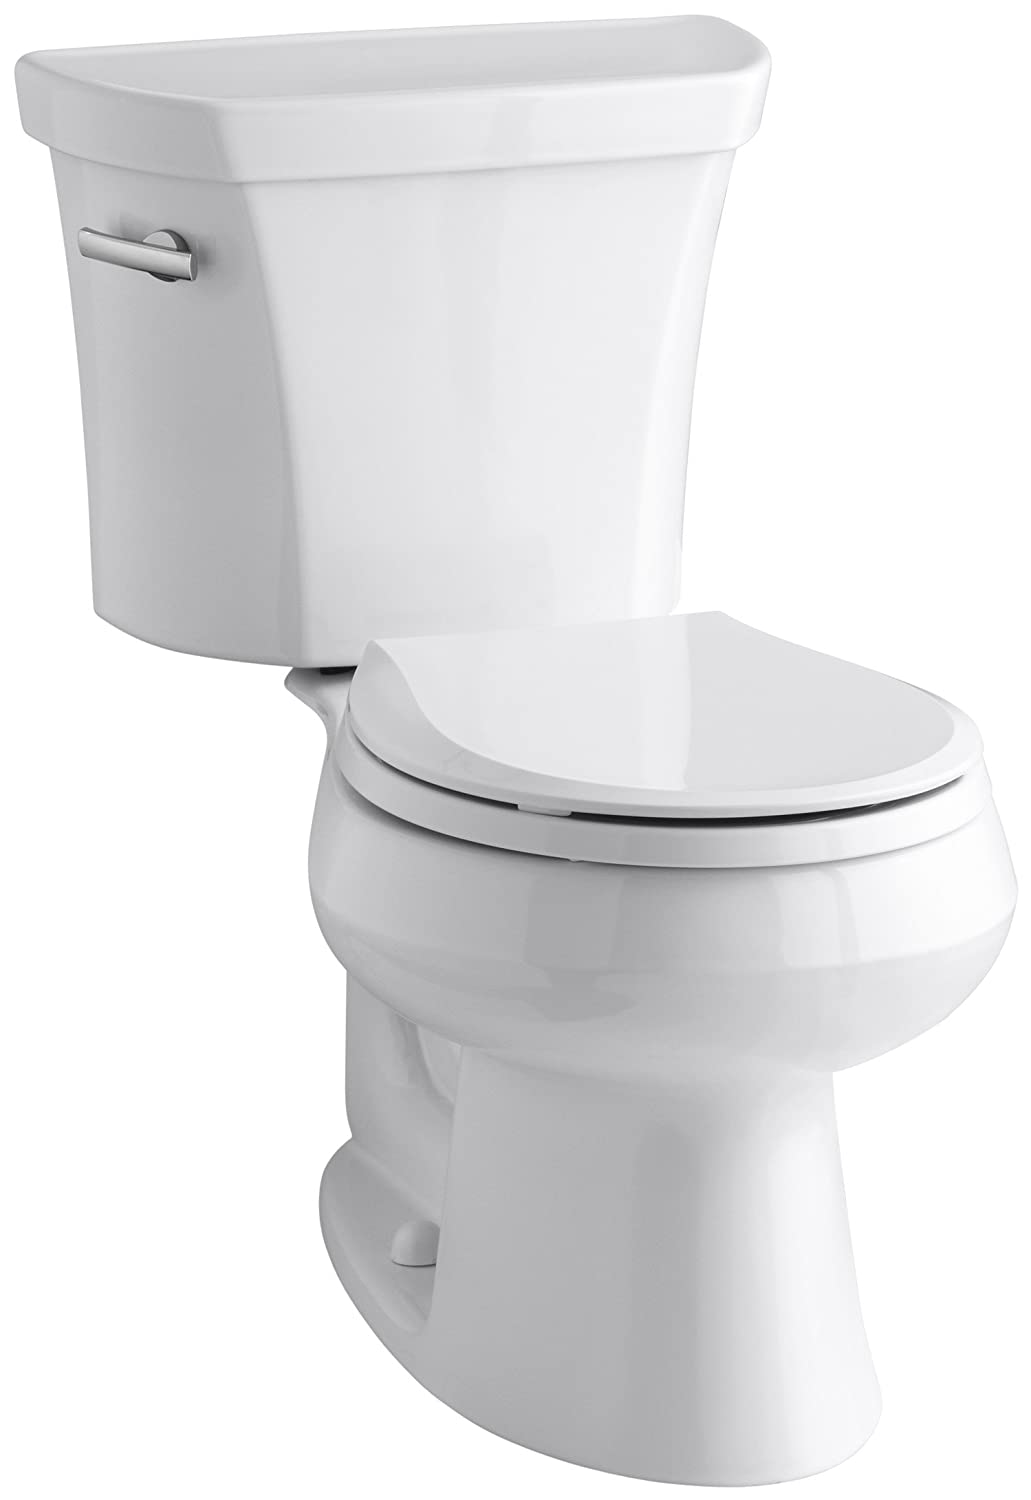 Top 5 Best Kohler Toilets Reviews in 2020 2